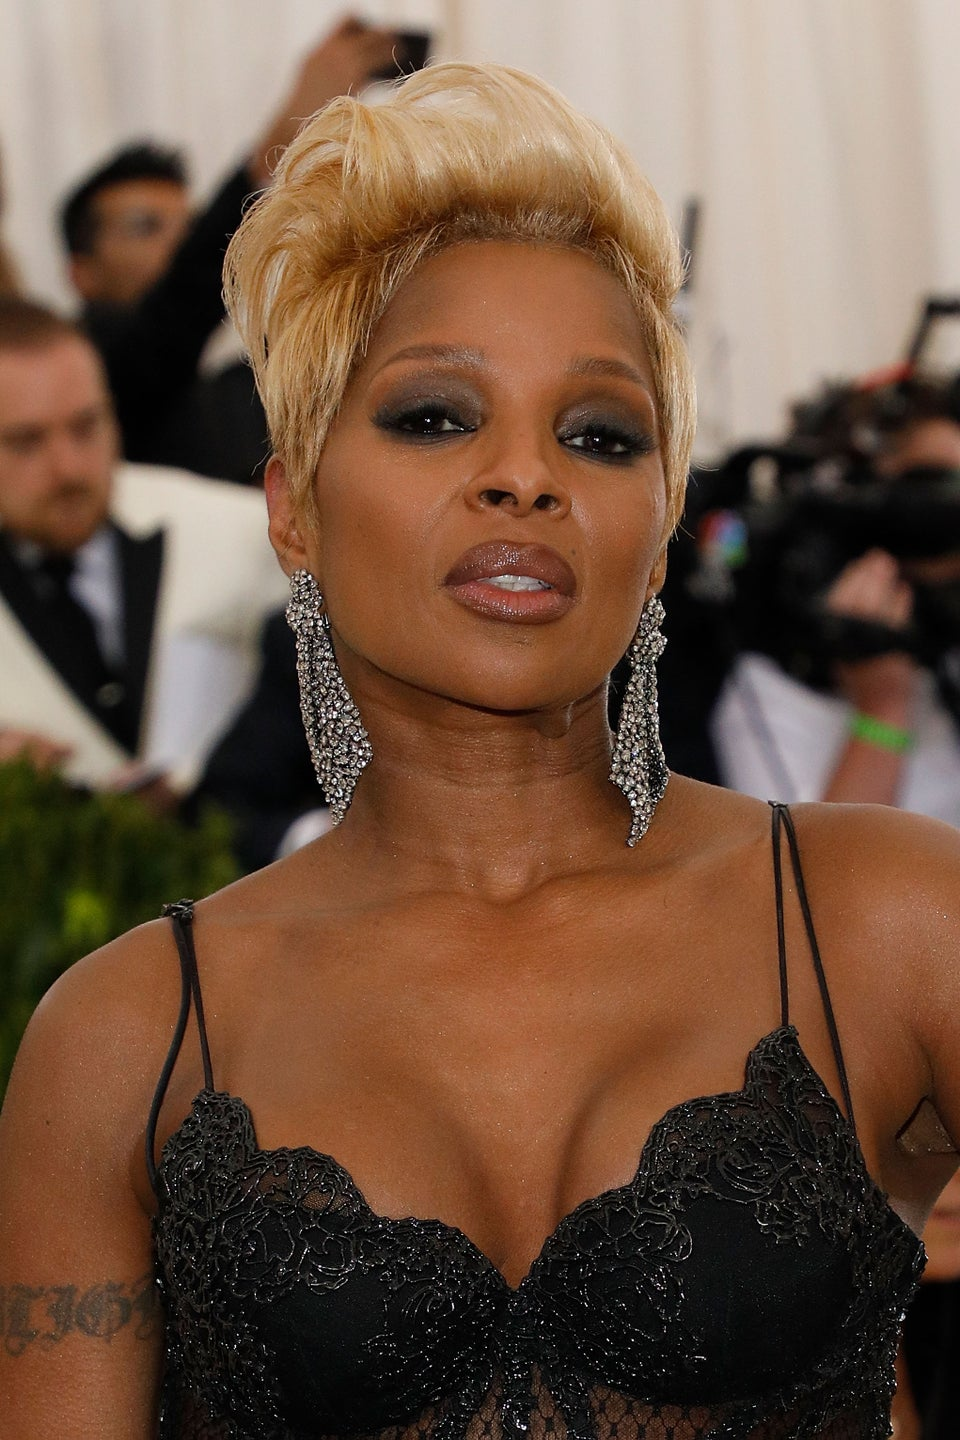 Mary J. Blige And K-Ci Were In The Same Room Together And Got Along